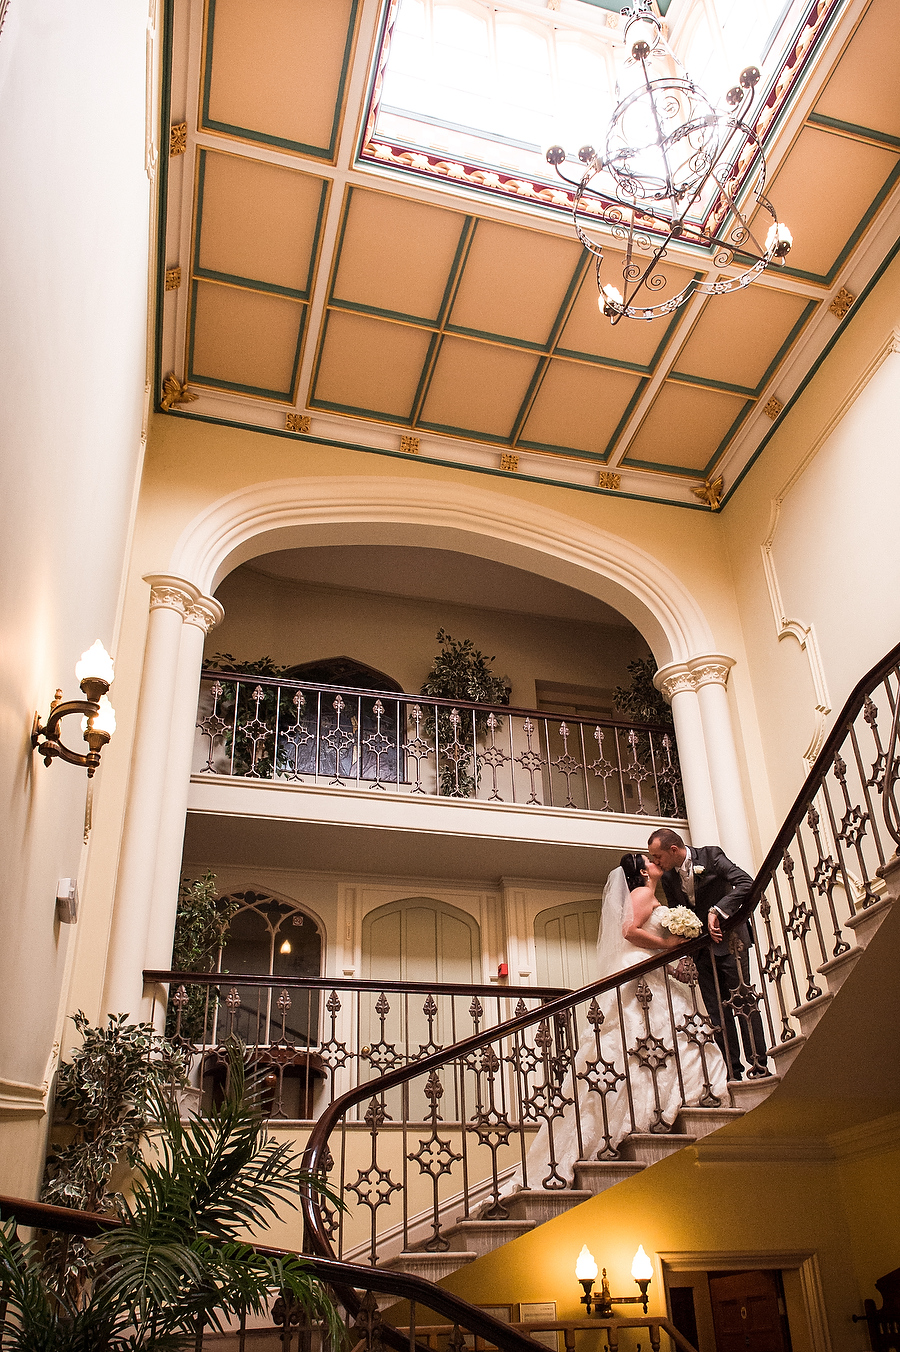 Stunning staircase at Hawkesyard Hall in Rugeley by Rugeley Contemporary Wedding Photographer Barry James